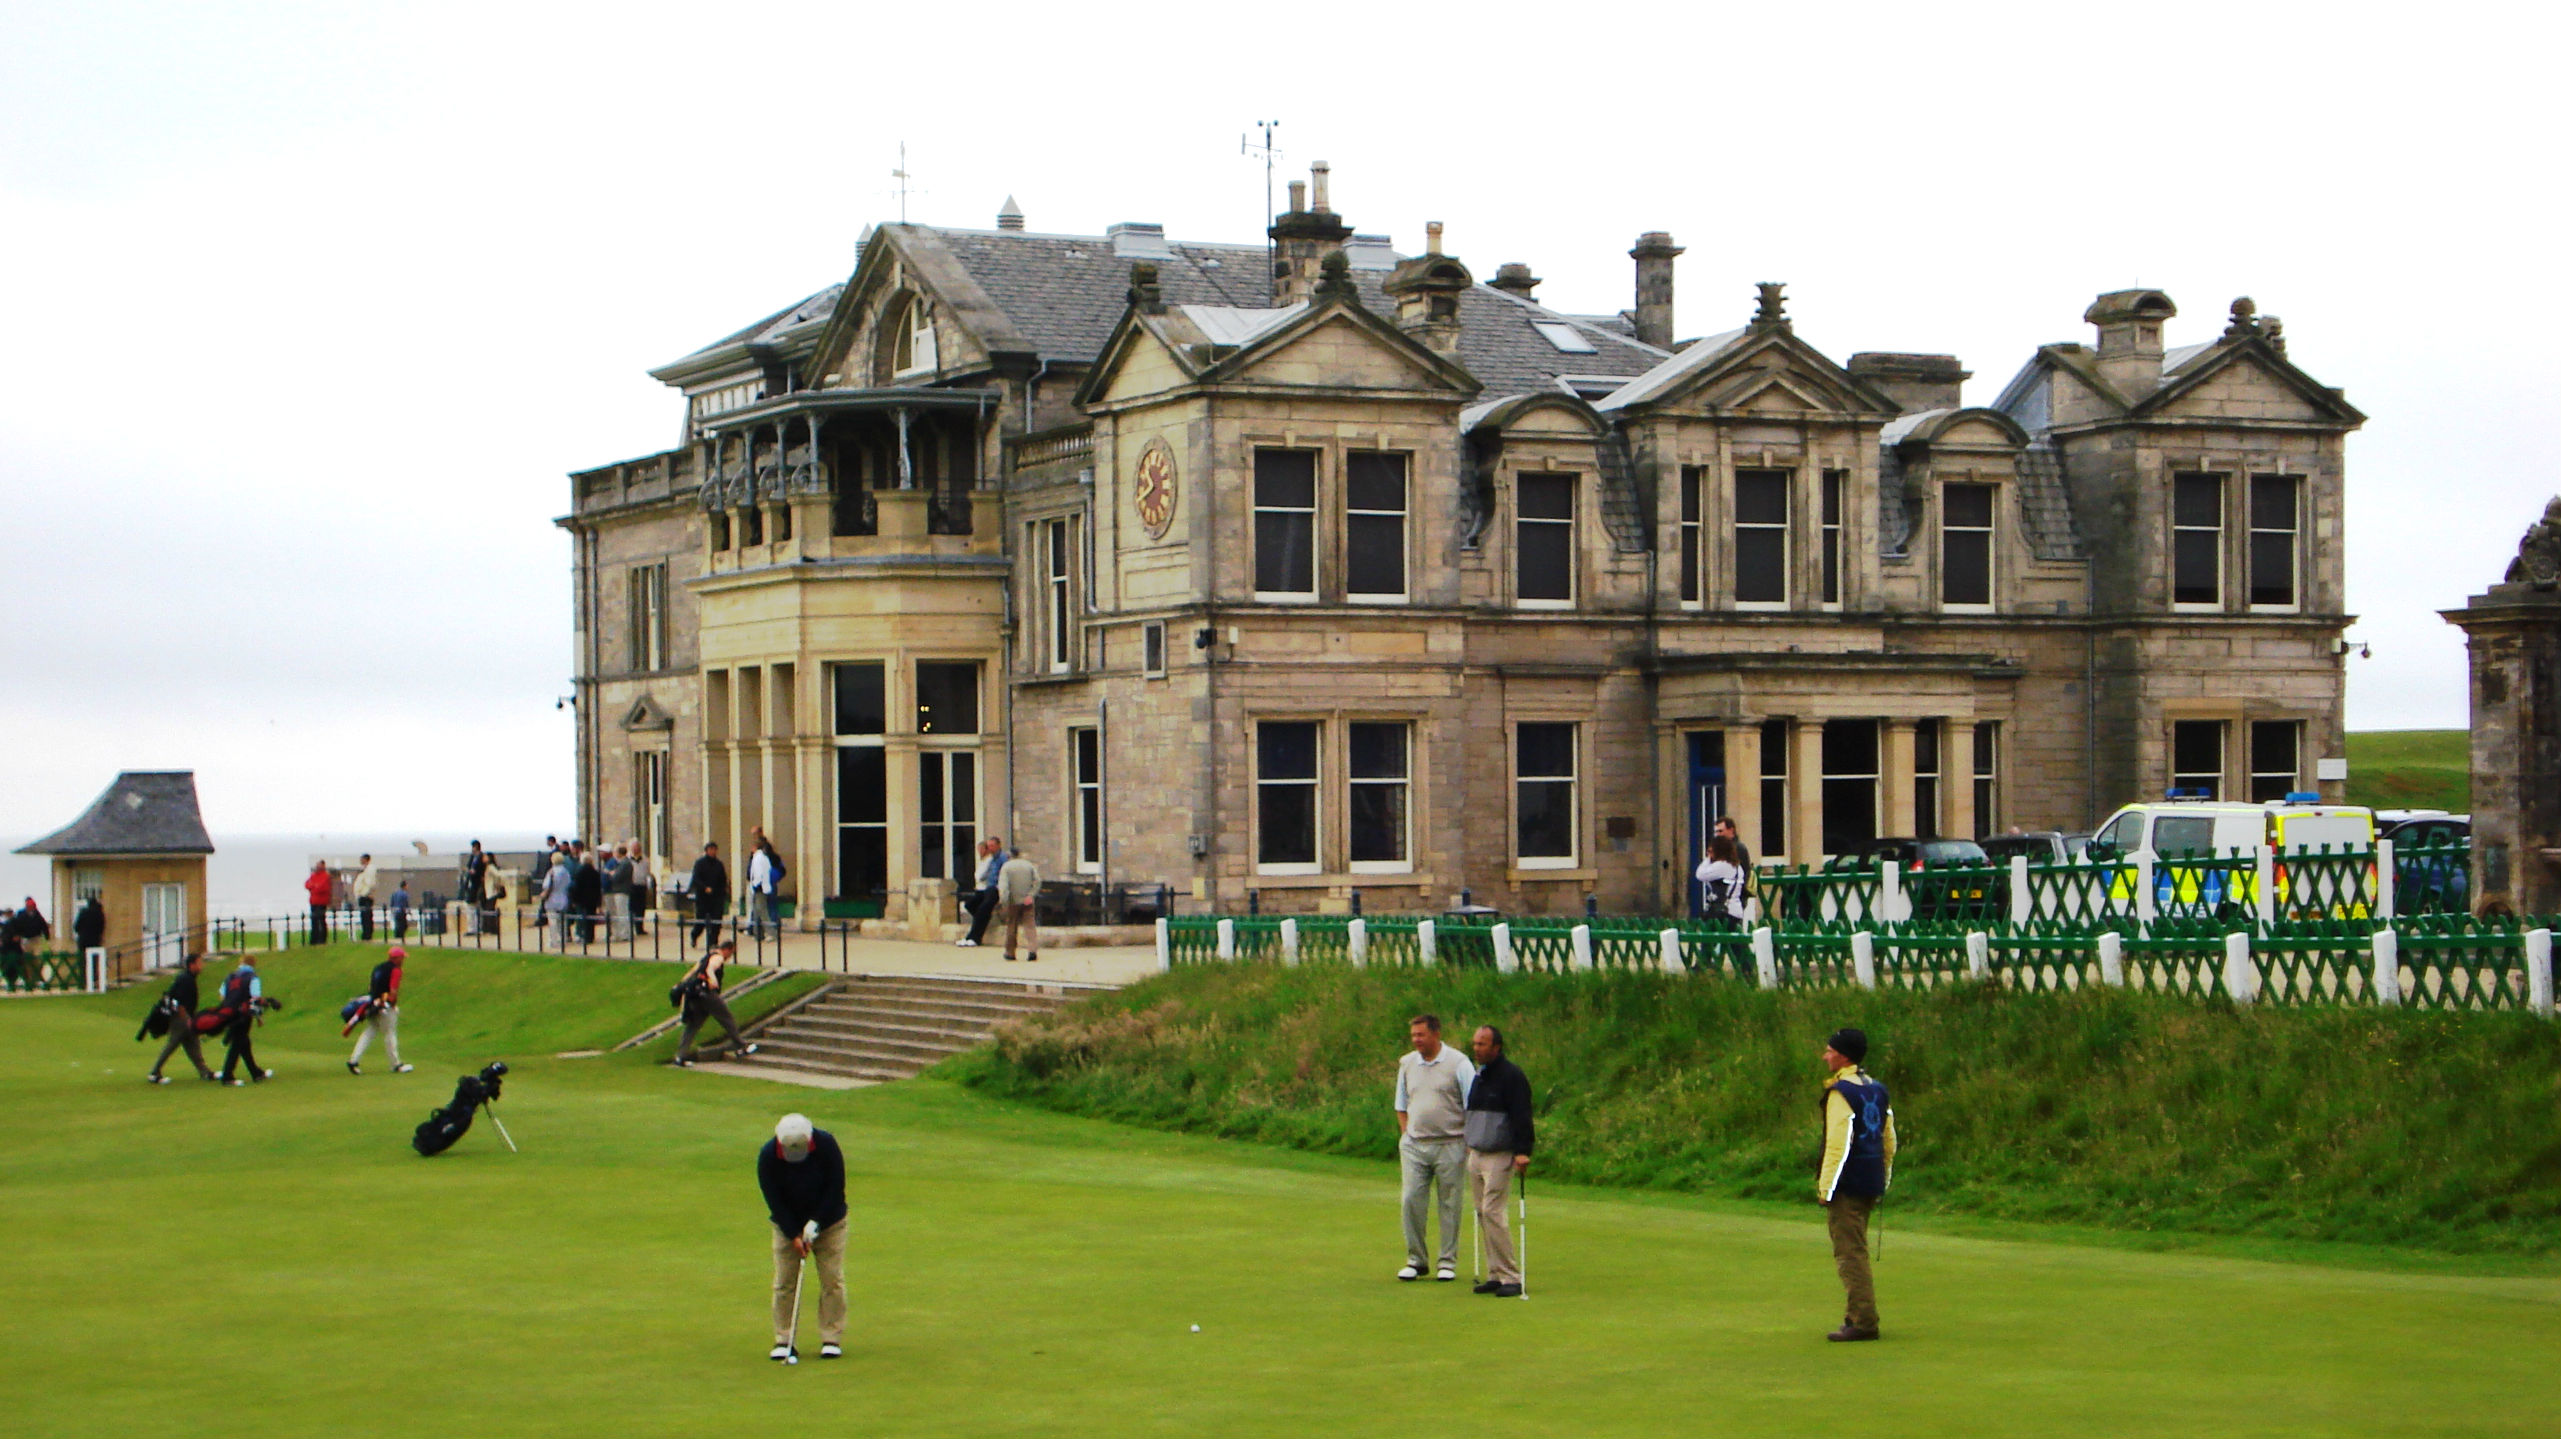 The Royal and Ancient Golf Society and the Old Course (the birthplace of golf). (Credit: Jay Lloyd)